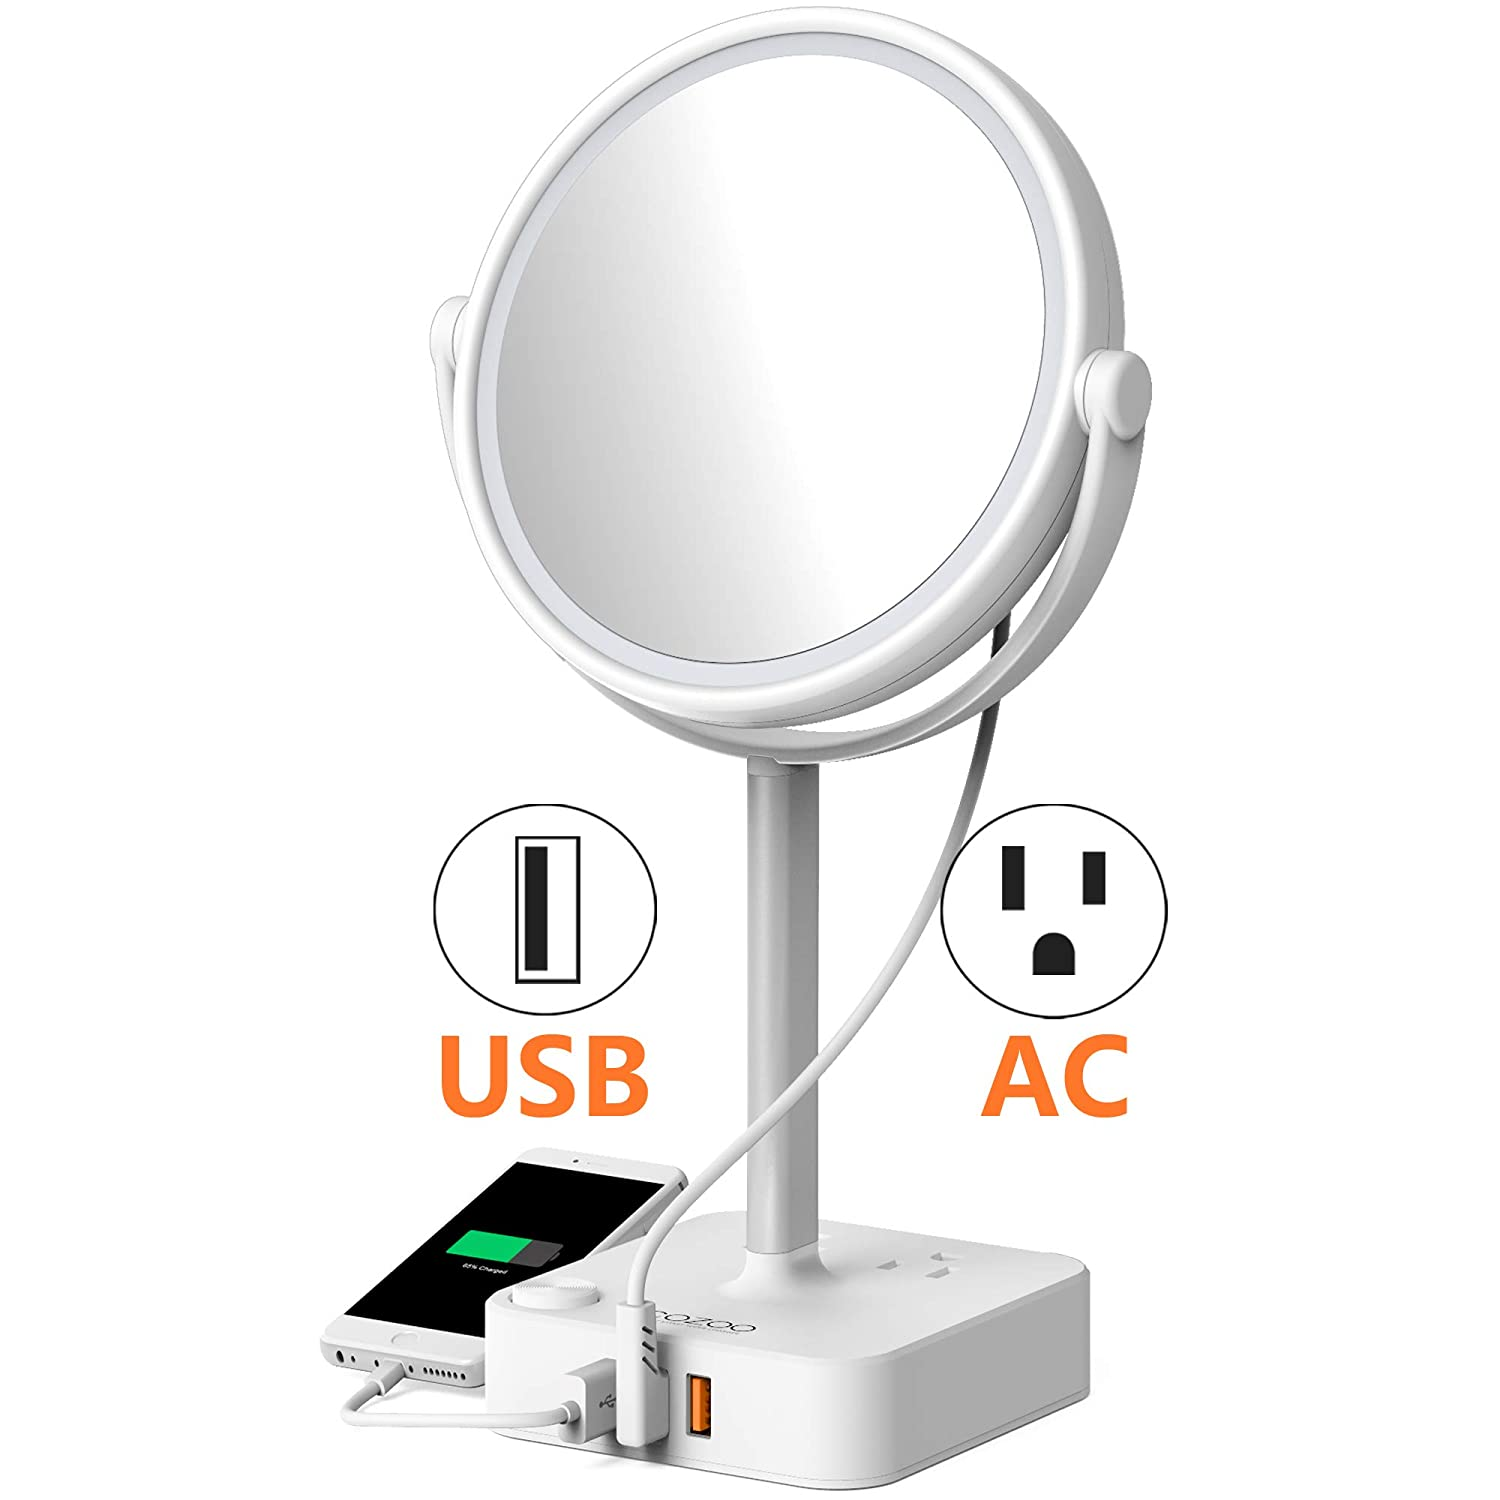 COZOO Lighted Makeup Mirror with LED Light and 3 Ports USB Charger / 2 Outlet Power Strip,5 Inch Round Diameter Daylight Natural White Light Mirror,AC Power Or Battery Operated,Cord or Cordless